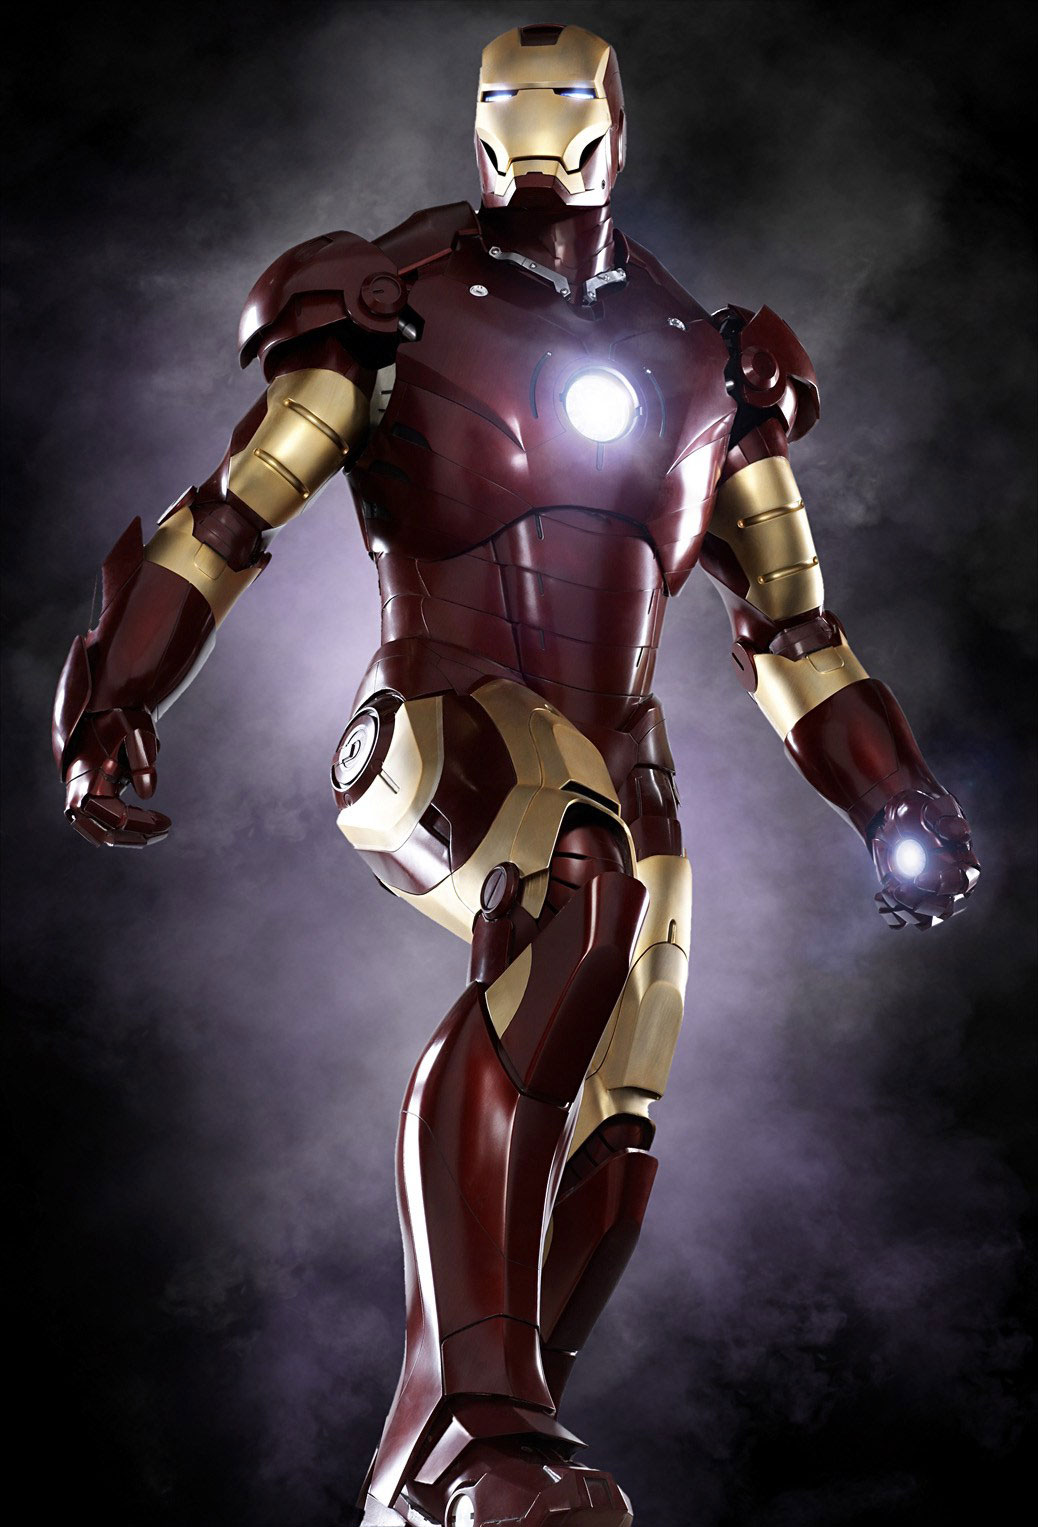 Superhero Wallpapers-Ironman 2